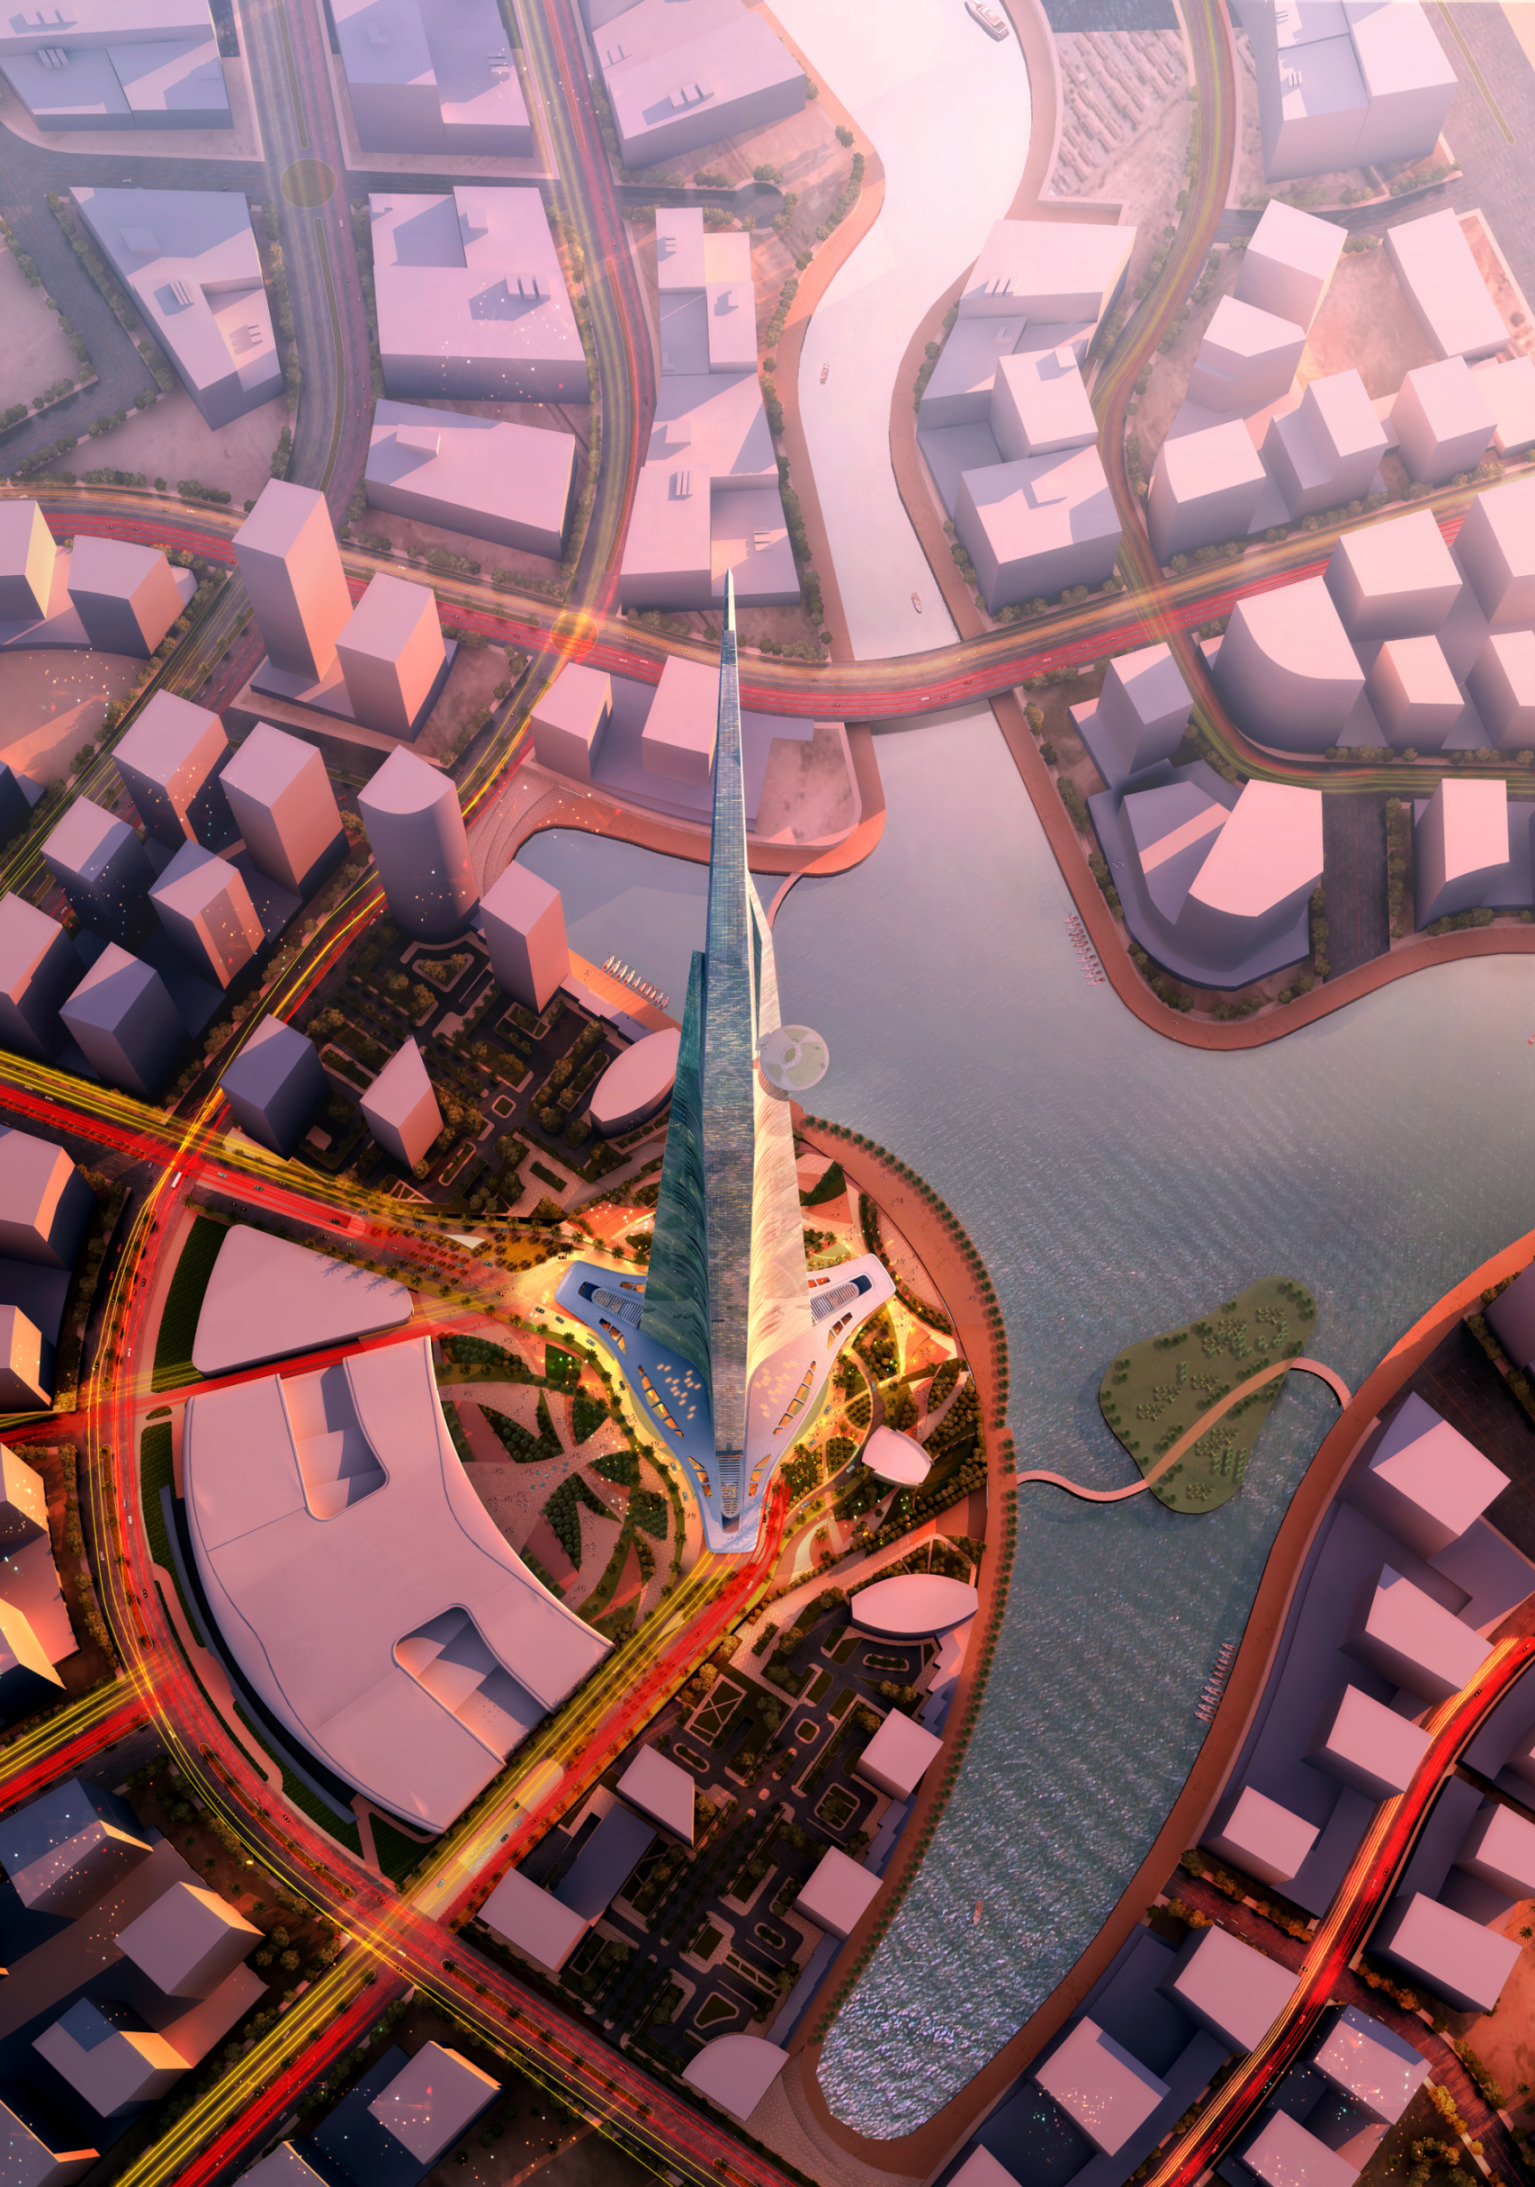 This image shows the planned  Kingdom Tower  in Jeddah, Saudi Arabia, from the air. The tower will be more than 1,000 meters high.